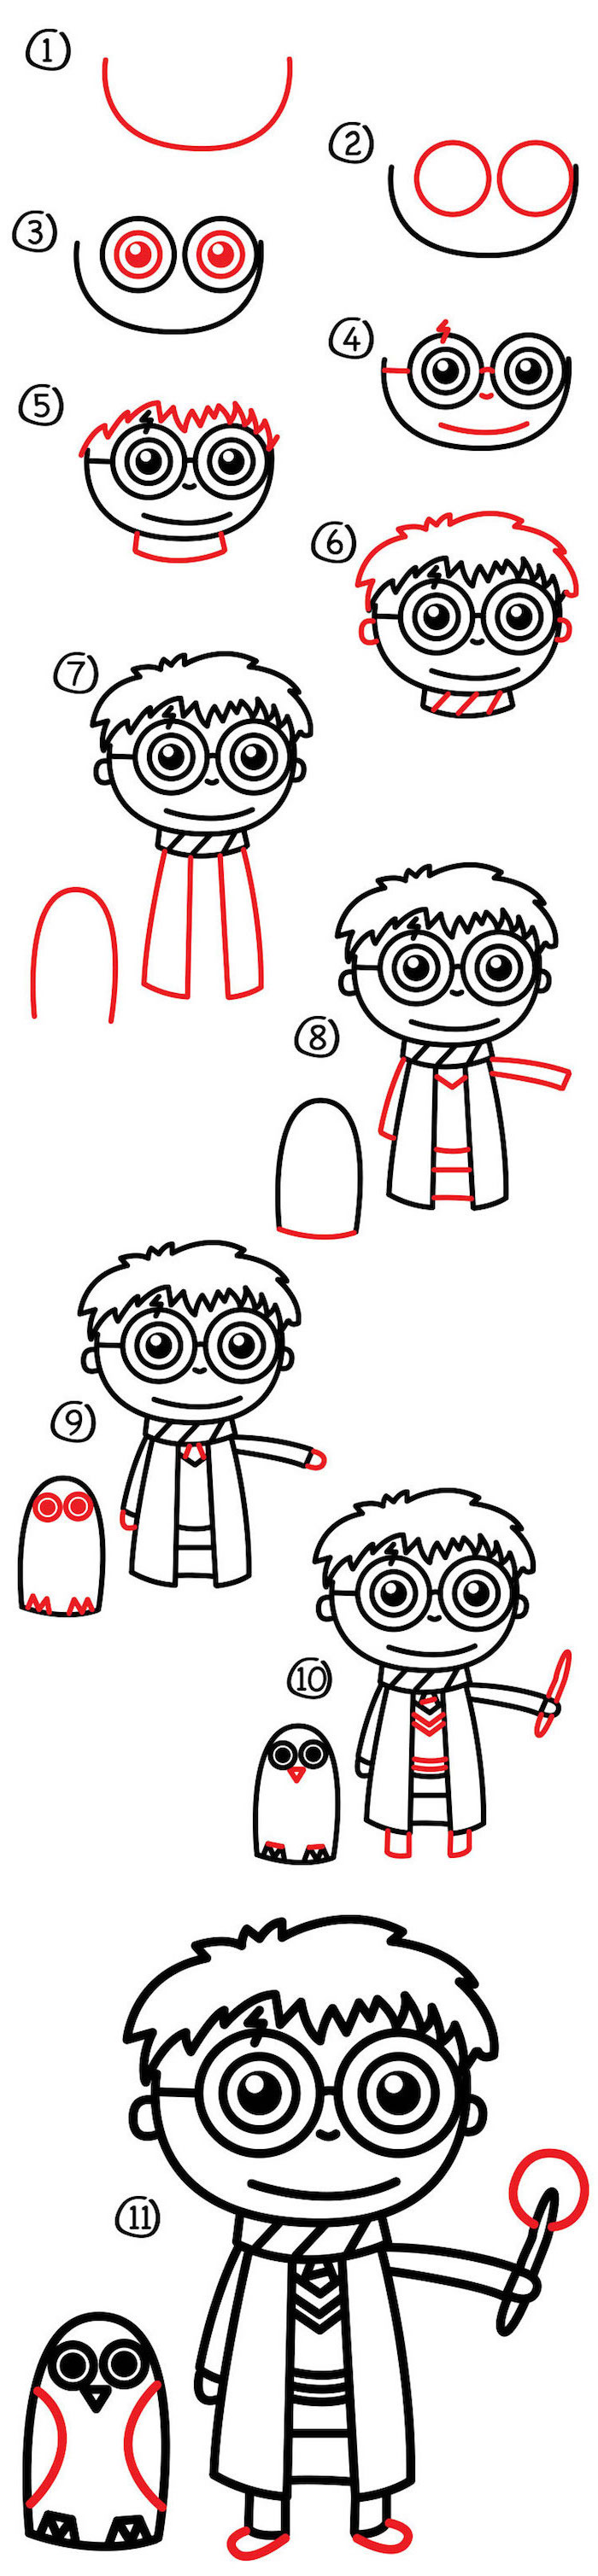 step by step diy tutorial, harry potter doodles, harry holding a wand, hedwig standing next to him, eleven step tutorial